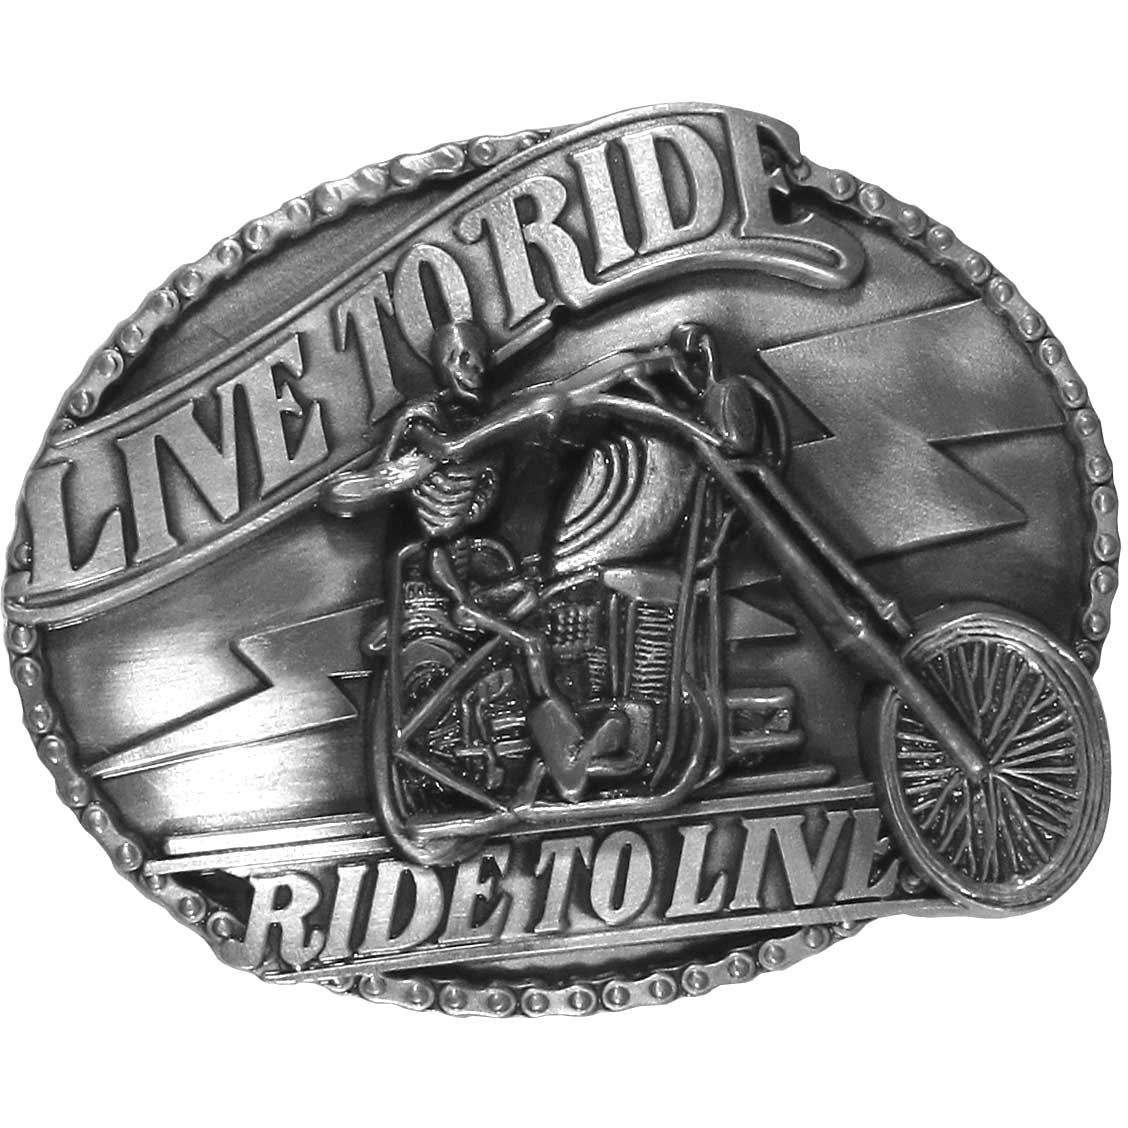 Live to Ride Motorcycle Skeleton Antiqued Belt Buckle - Our fully cast, metal Live to Ride belt buckle features an expertly carved skeleton riding a chopper. The epic biker slogan Live to Ride Ride to Live is written in bold and the buckle border is a motorcycle chain.